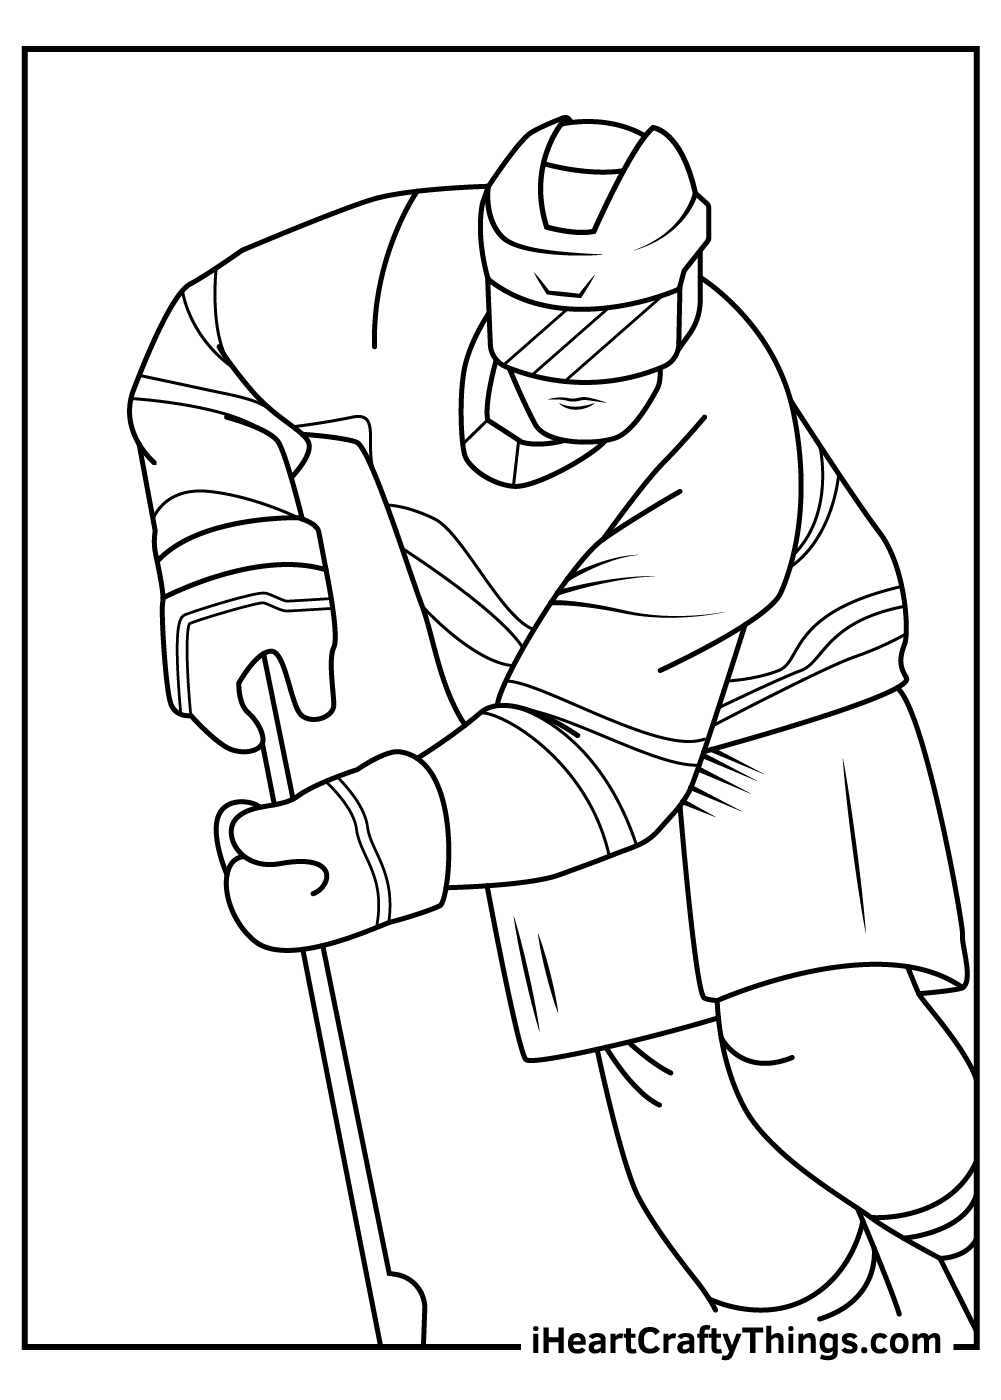 free nhl coloring pages